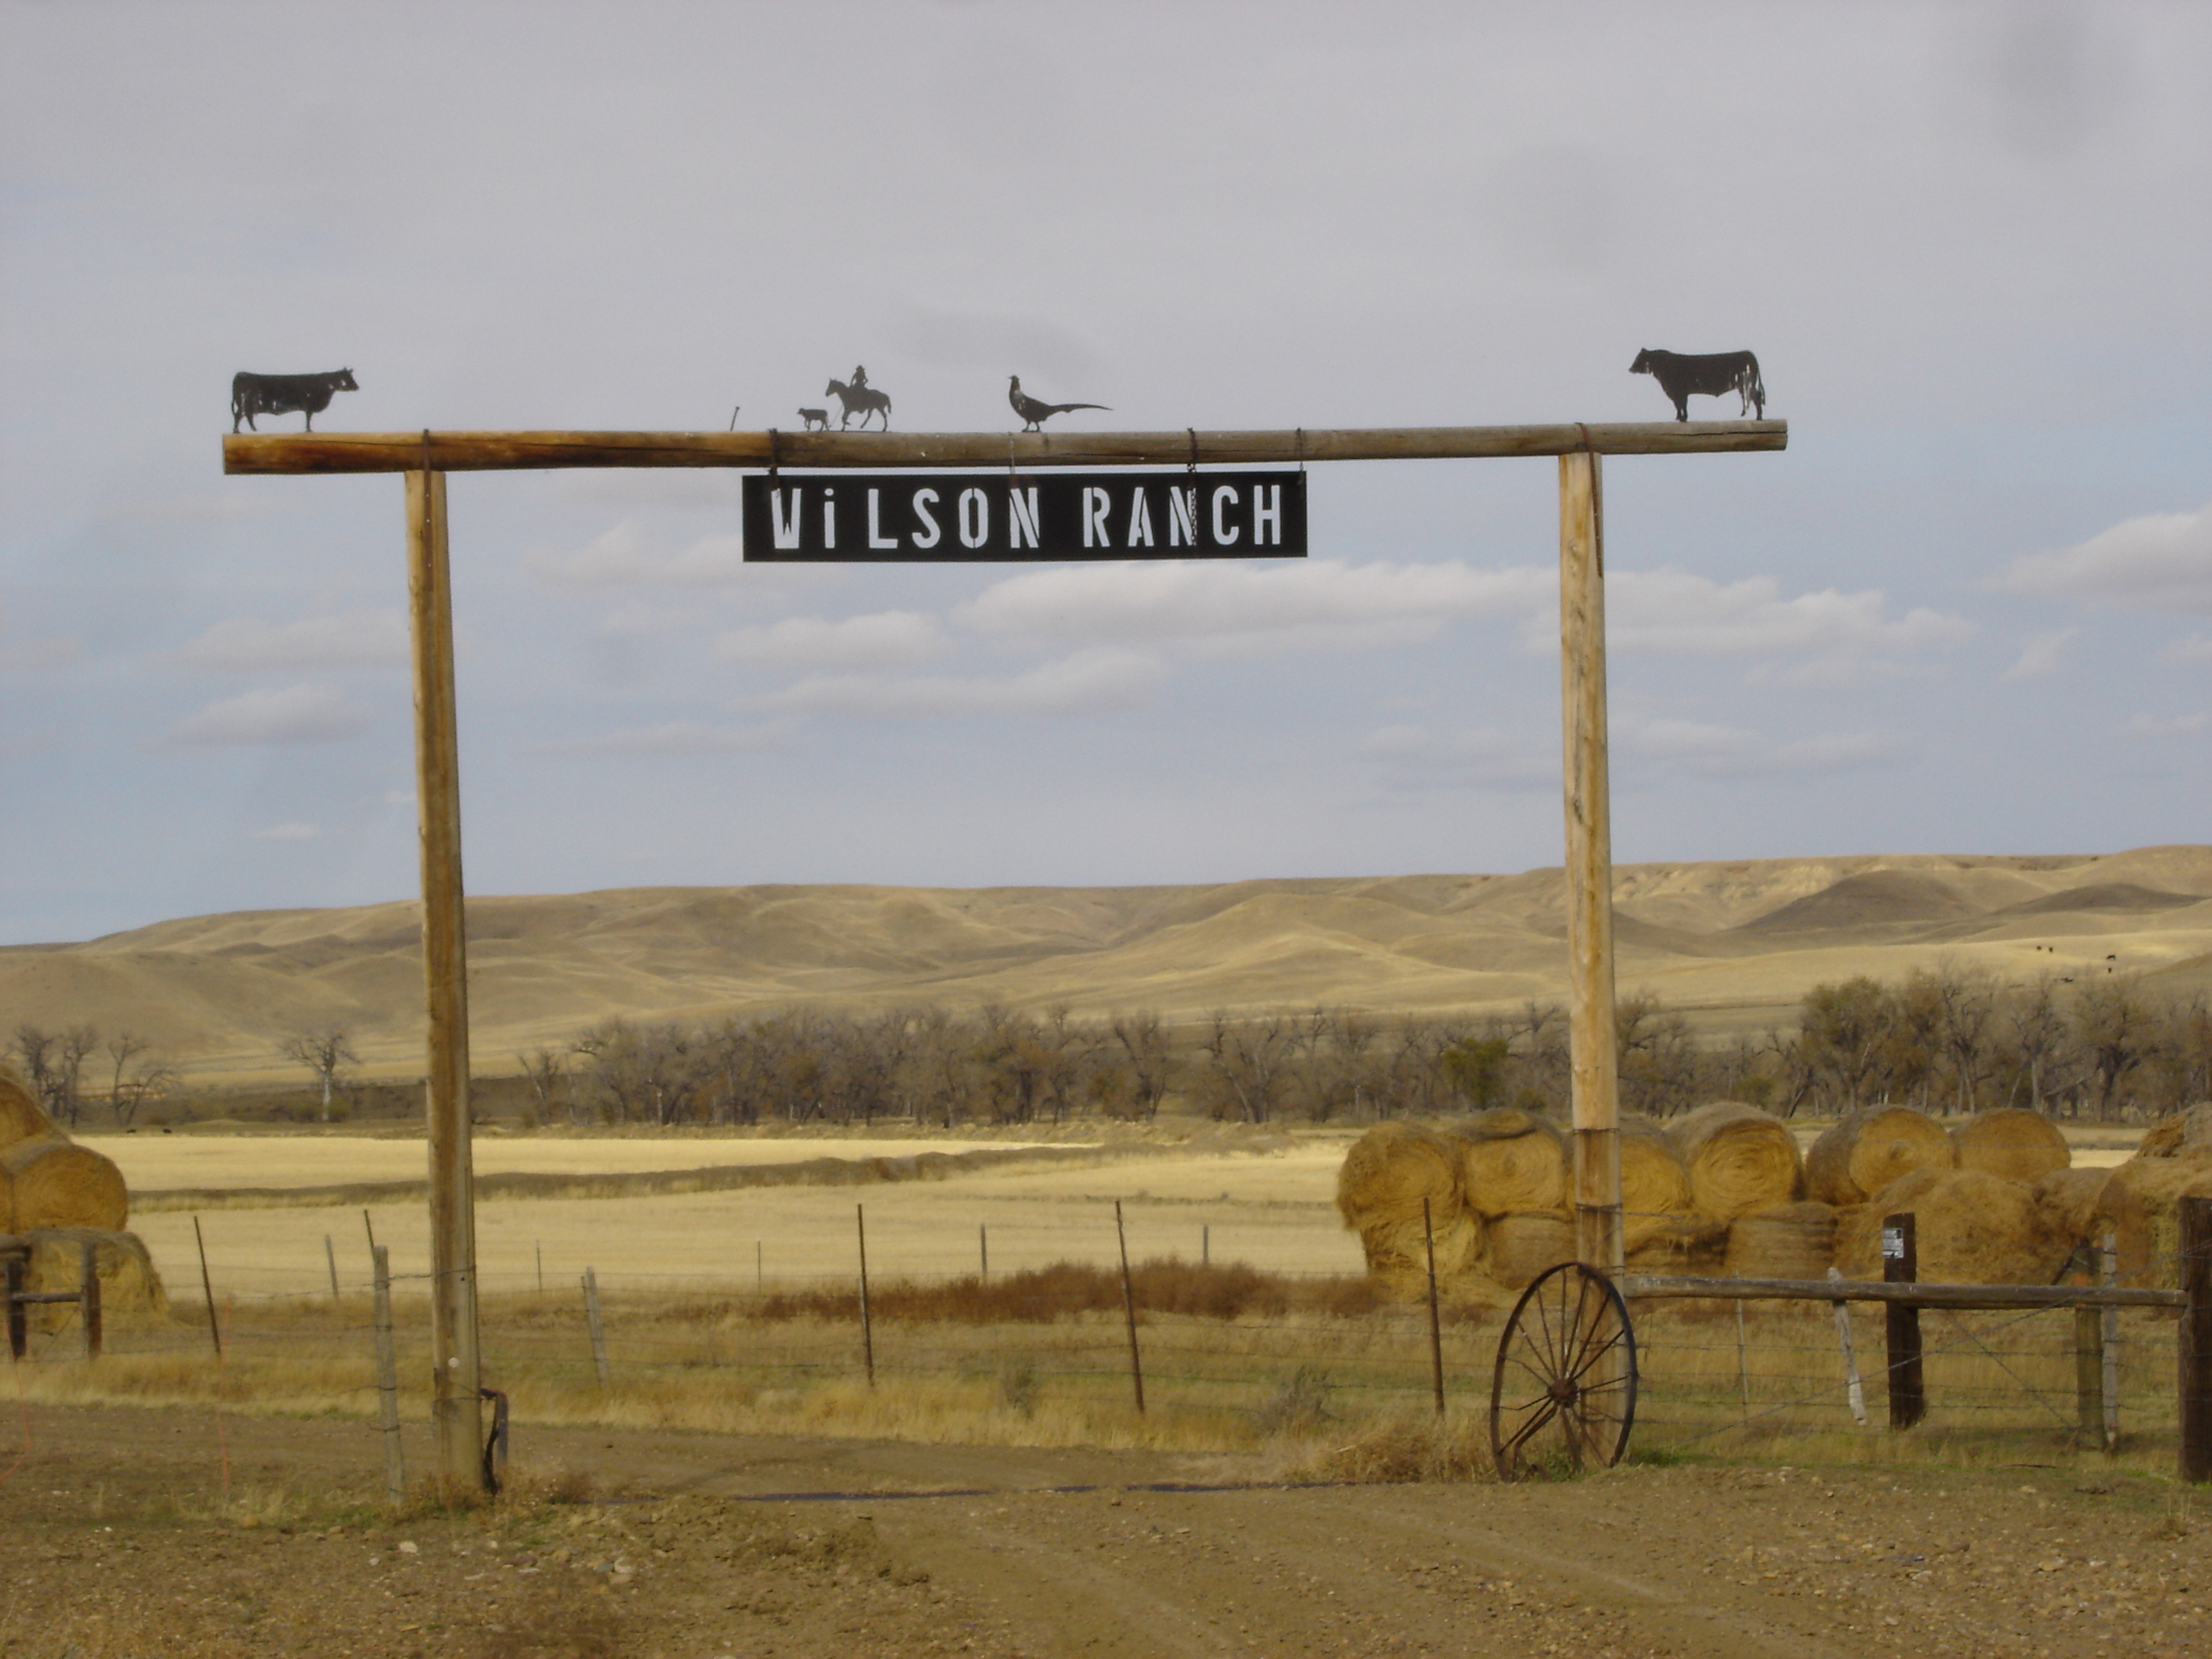 Wilson Ranch Entrance